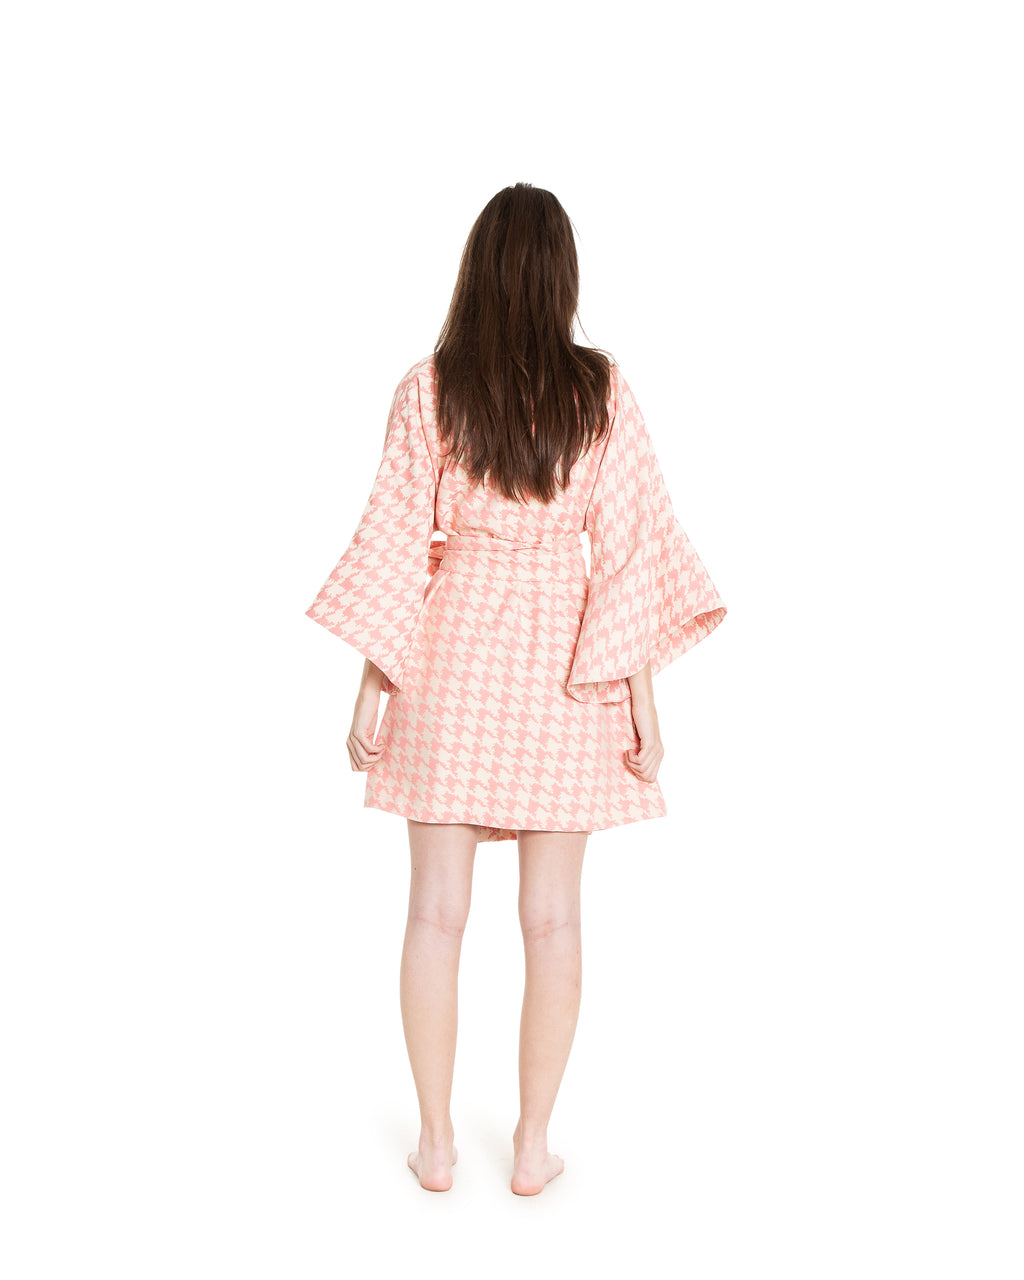 no. 706 pink houndstooth mini wrap